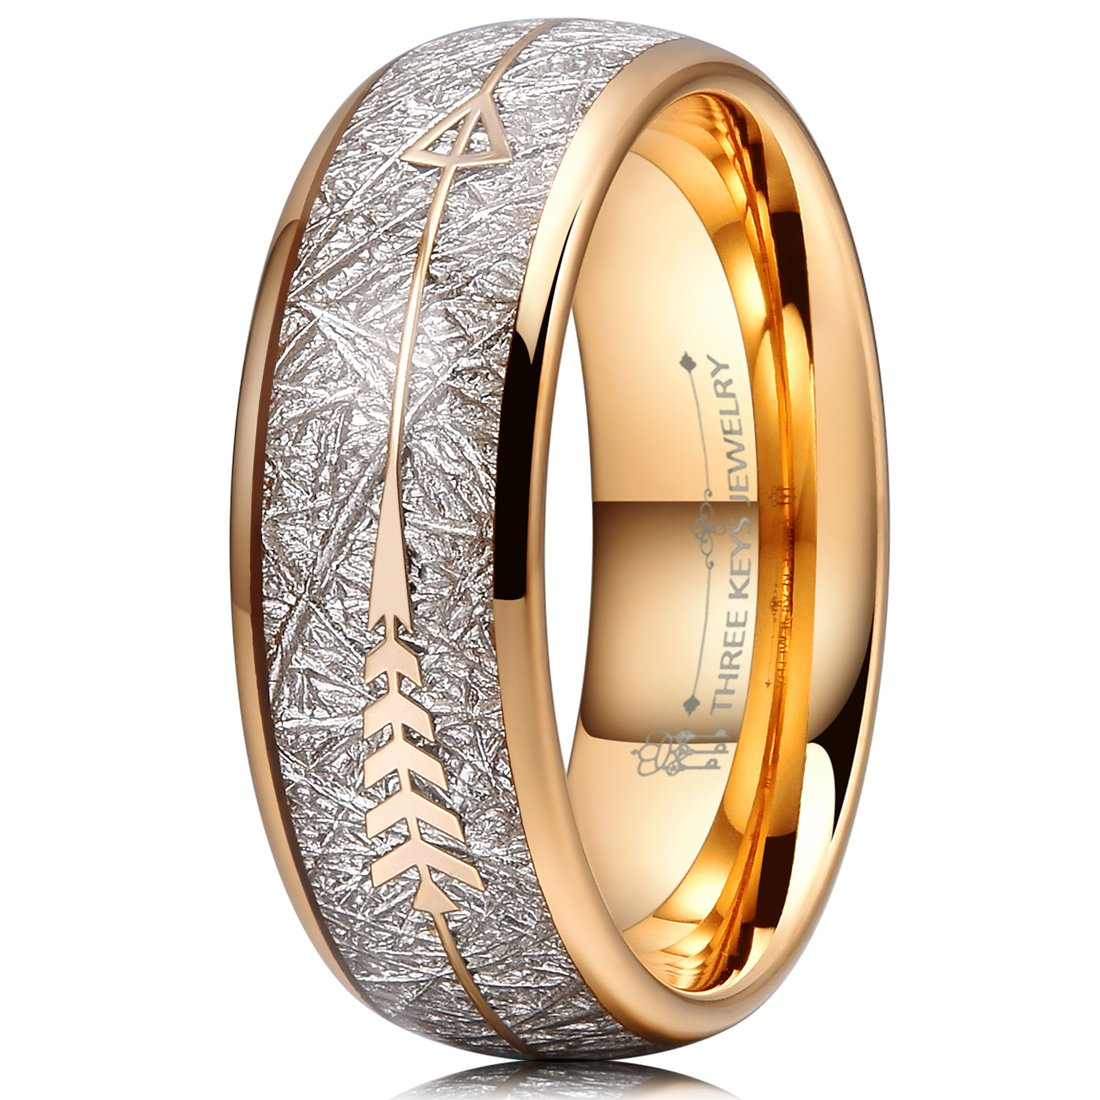 Three Keys 8mm Tungsten Wedding Ring for Men Domed Imitated Meteorite Arrows Inlay Gold Mens Meteorite Wedding Band Engagement Ring Promise Ring Size 13